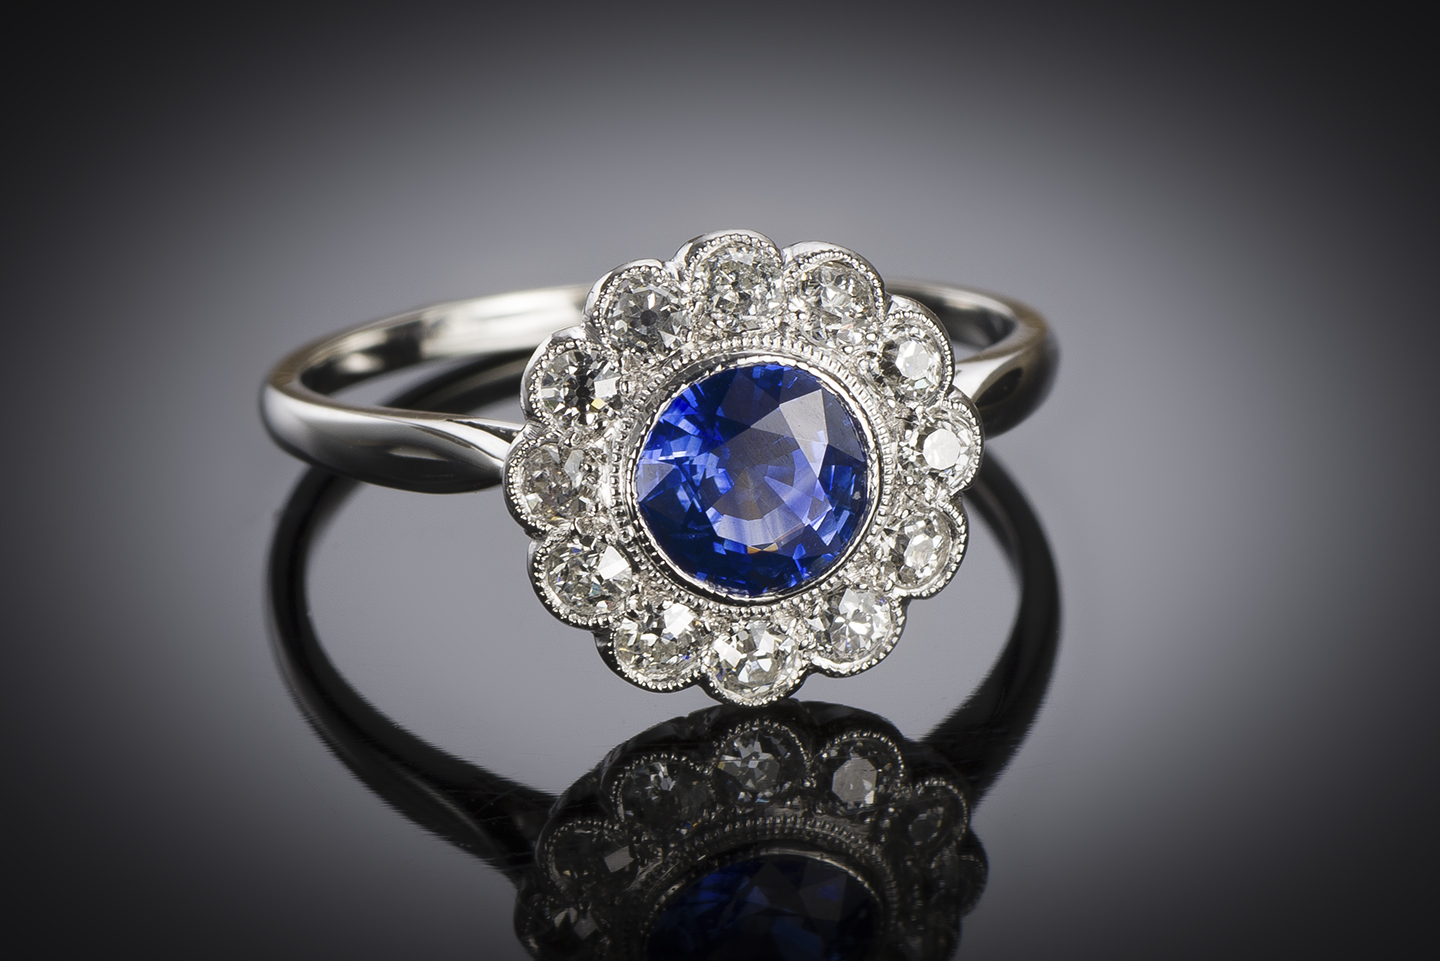 Bague saphir diamants vers 1930-1